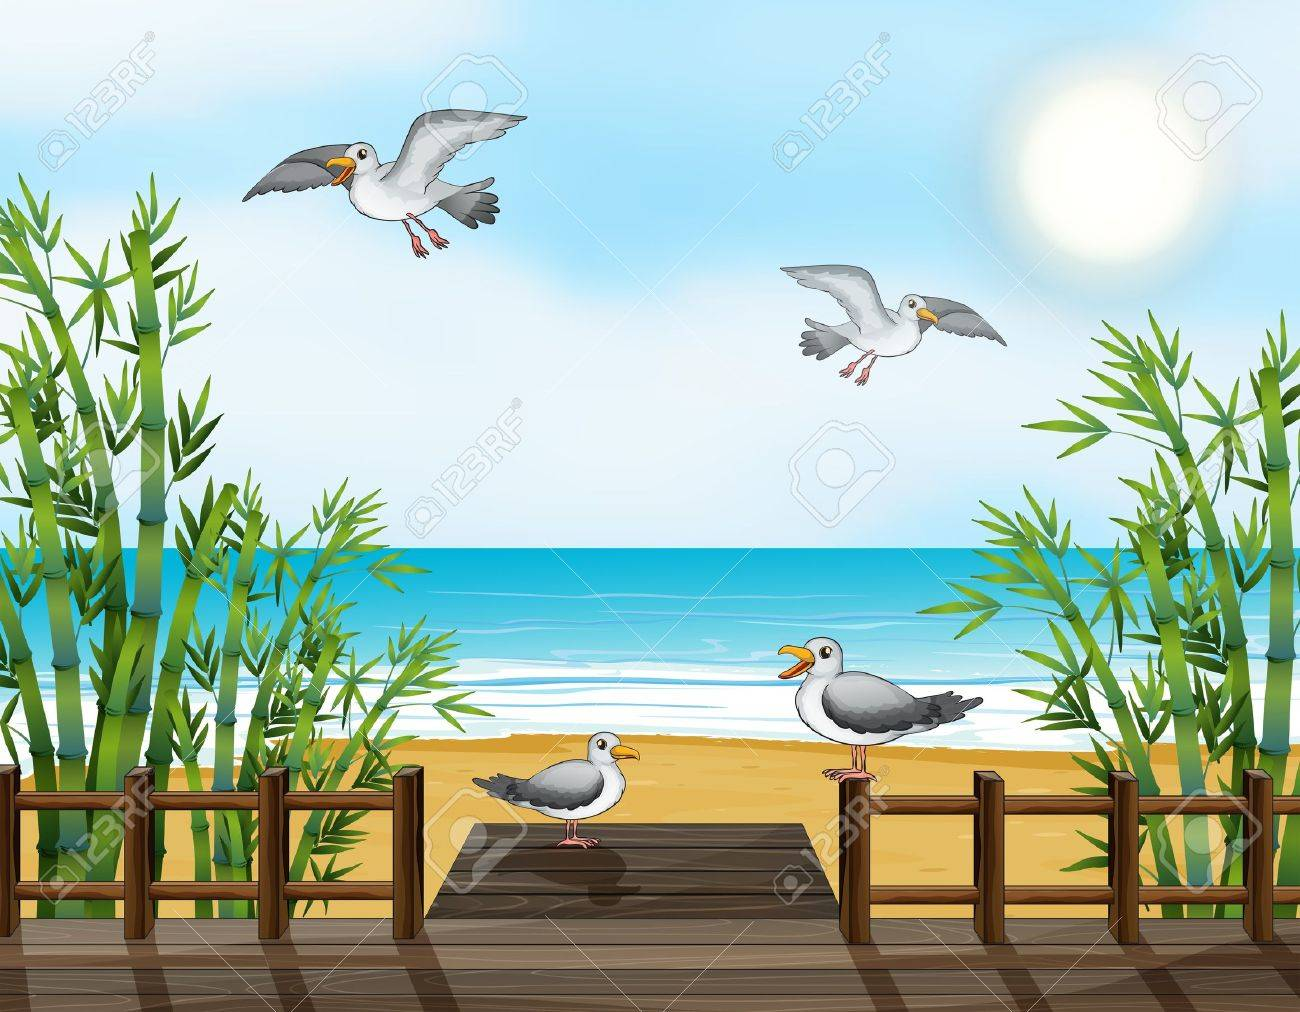 Illustration of a flock of birds at the bridge Stock Vector - 17867957